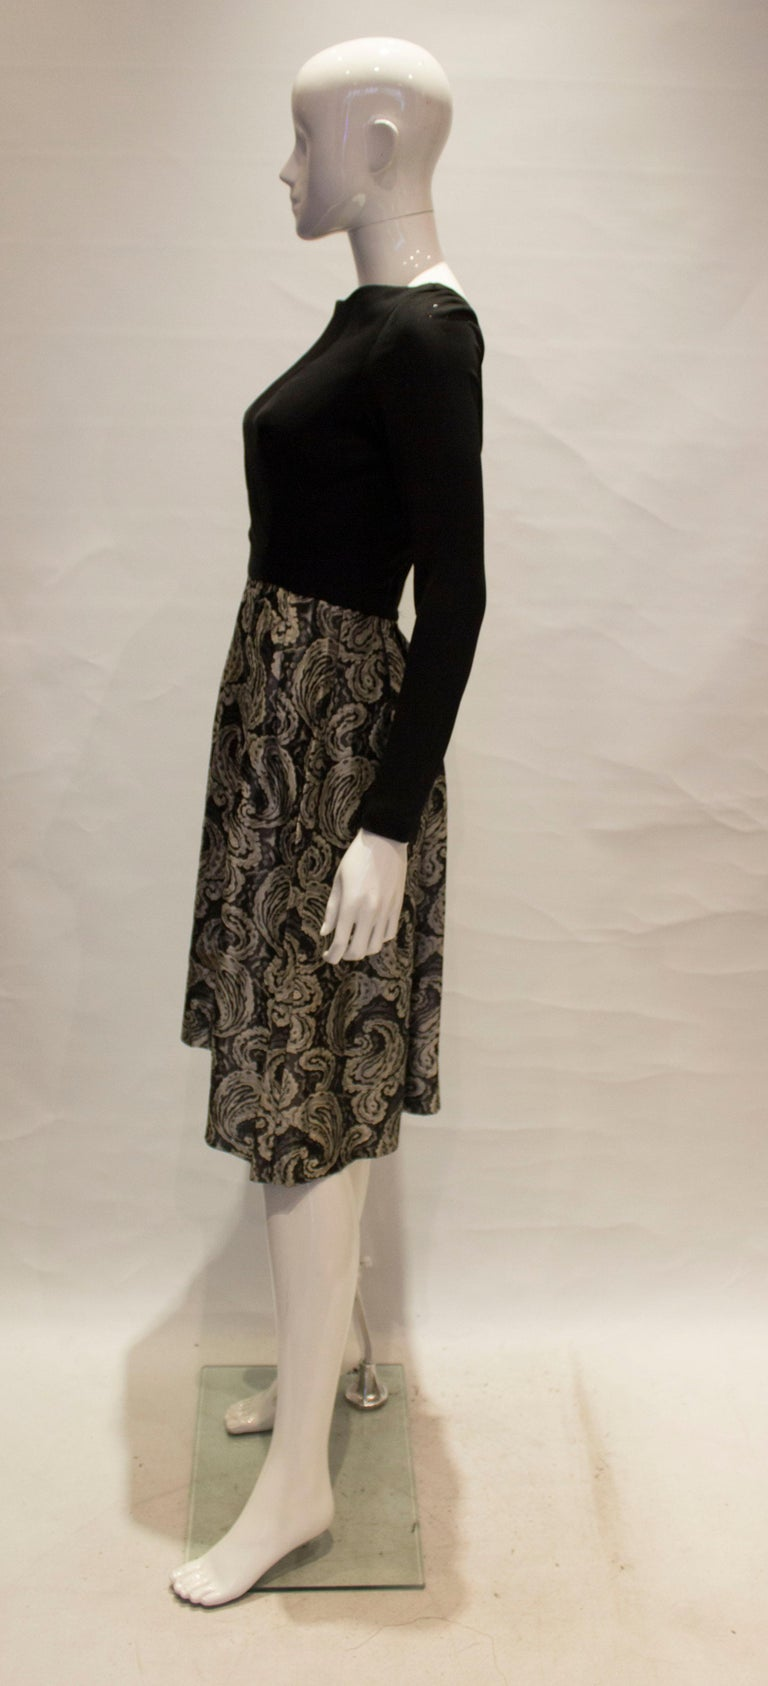 Women's A vintage 1950s silver and black brocade party low back paisley dress small